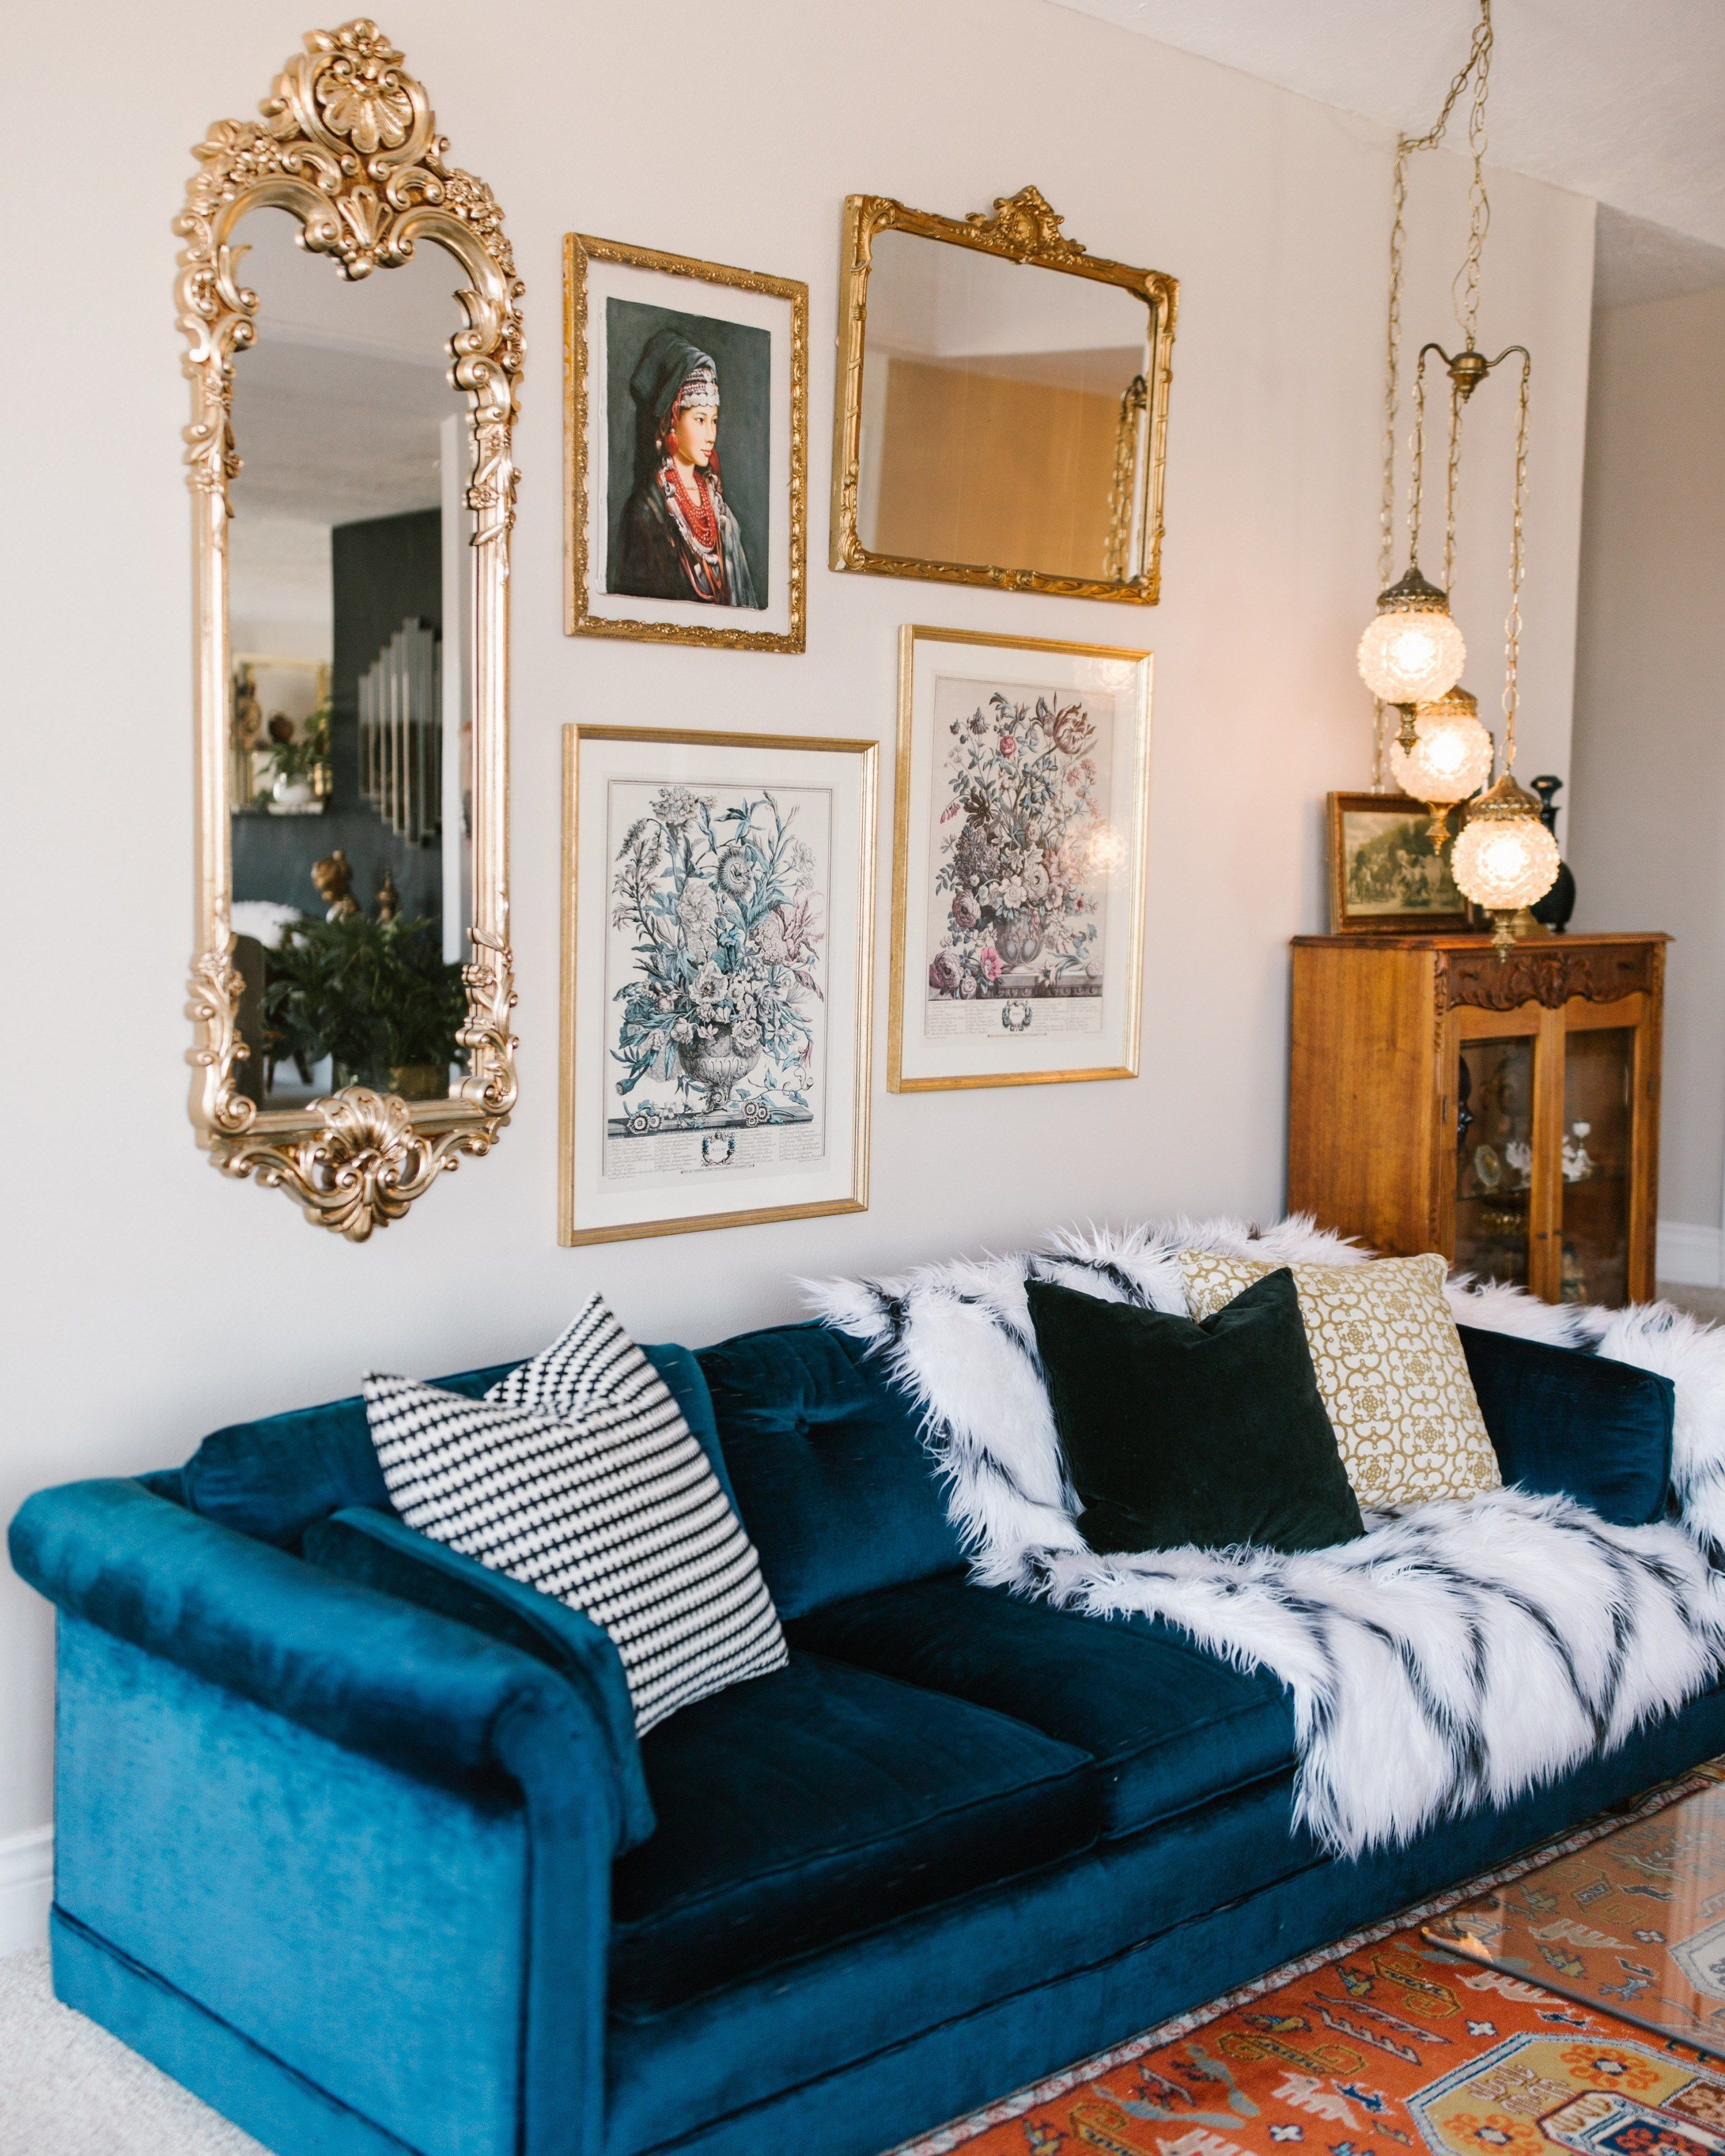 An Eclectic '70s Home Filled With Vintage Finds - Jenasie Earl - Vintage finds include this cobalt velvet sofa, swag lighting, mirrors and artwork. #gallerywall #vintagedecor #eclecticinteriors #eclecticdecor #velvetsofa #vintagedesign #swaglighting #interiordecor #interiordesign #homedecor #interiordecor #eclectichome #housetour #interiors